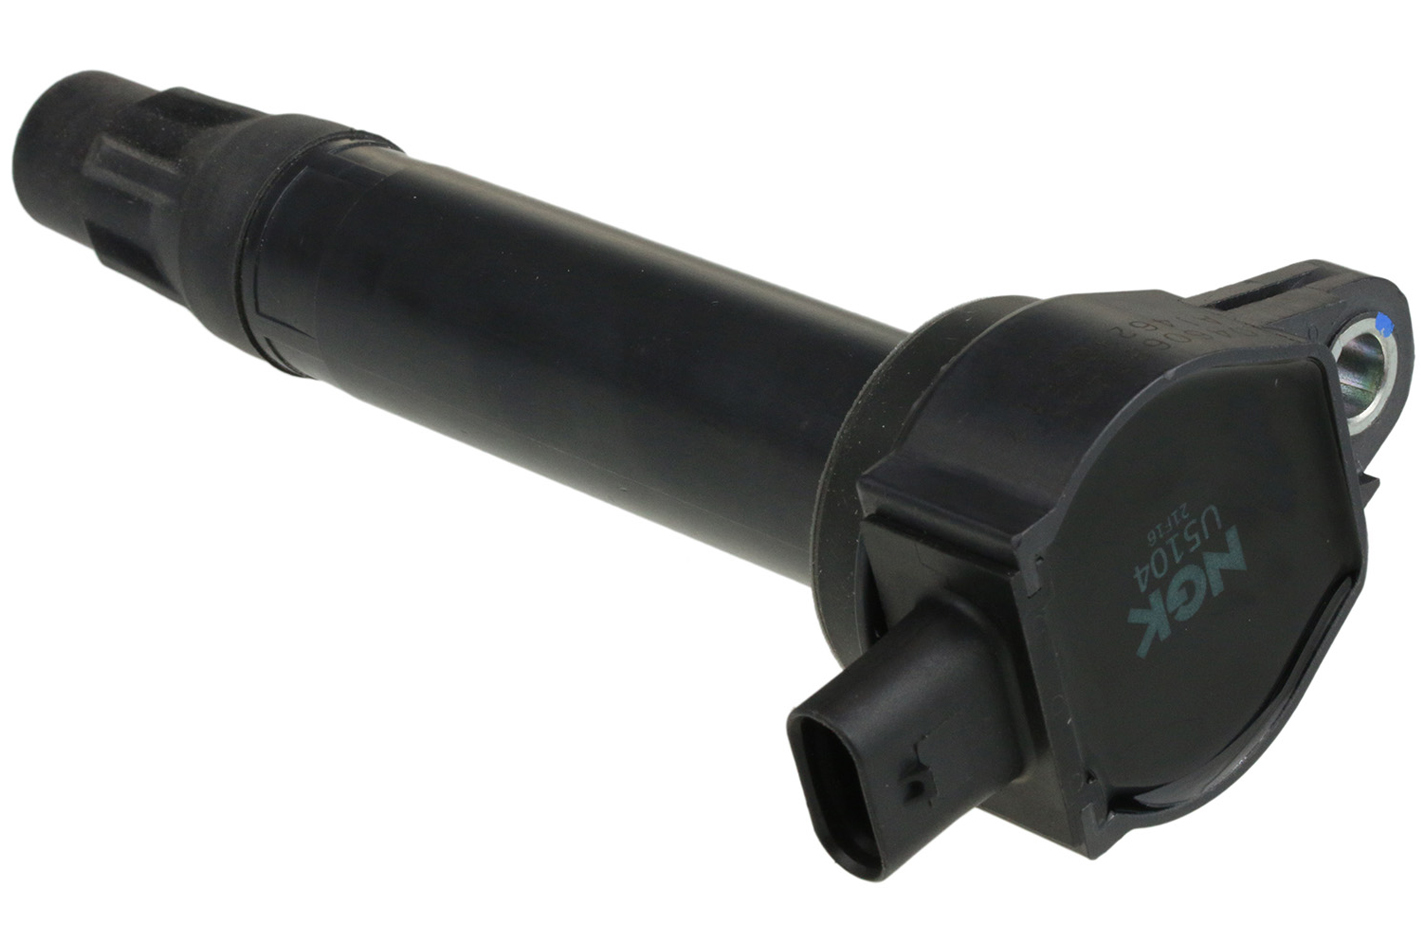 NGK U5104 Ignition Coil Pack, Coil-On-Plug Pencil Type, OE Specs, Black, Each